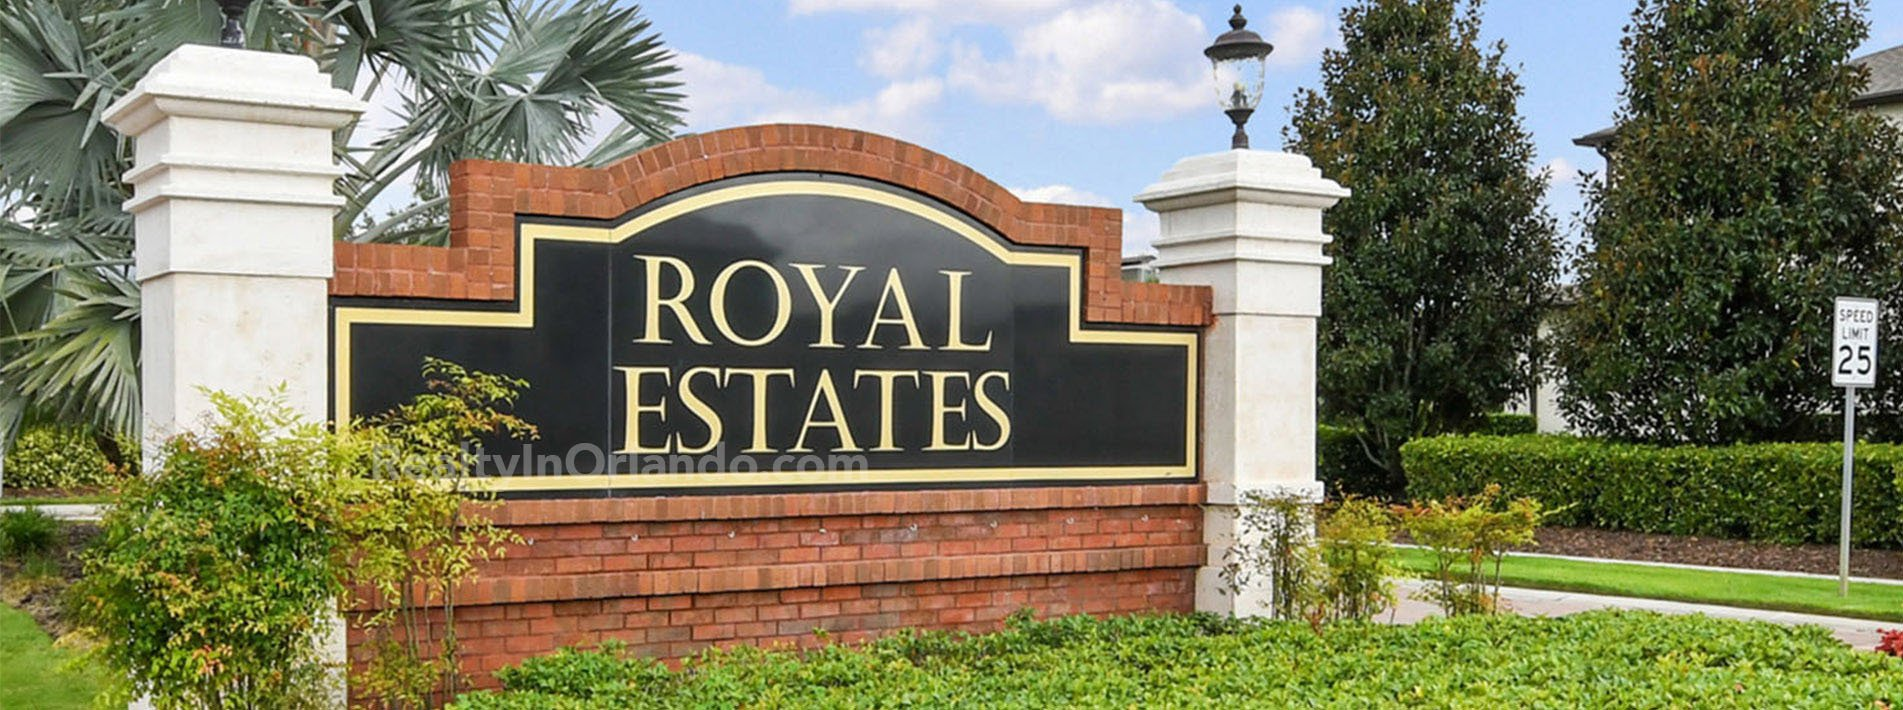 Royal Estates Windermere Homes